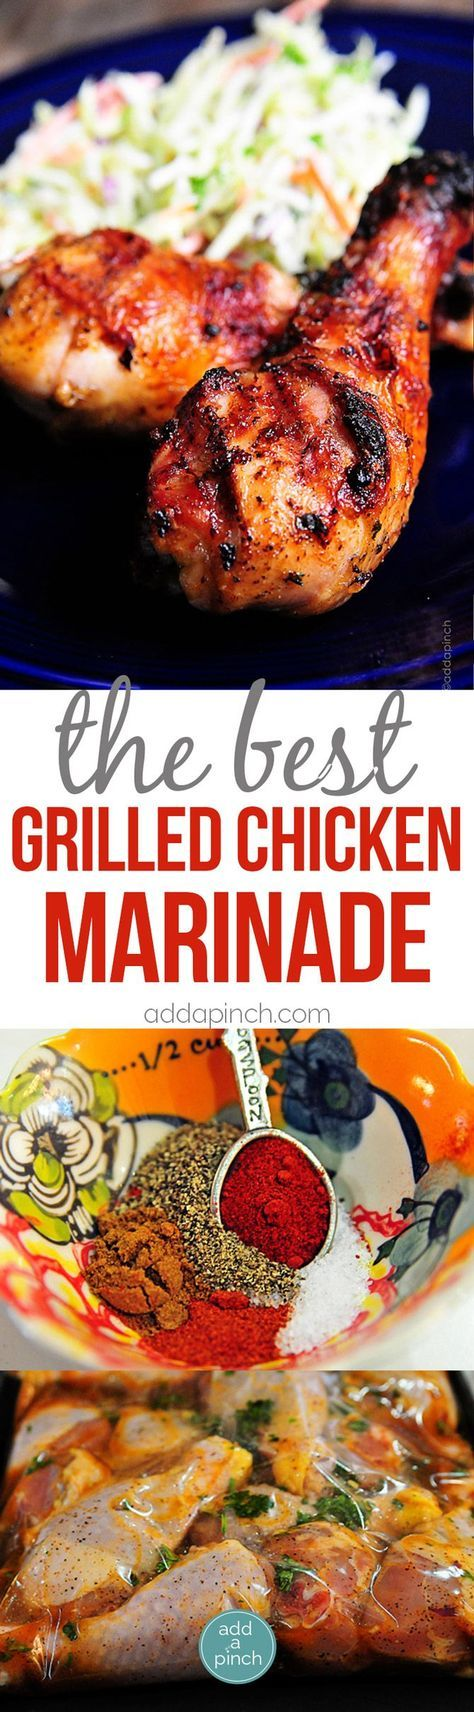 Best Grilled Chicken Marinade Recipe - Grilled Chicken recipes are always a crowd-pleaser. This easy grilled chicken marinade recipe will become a favorite! from /addapinch/